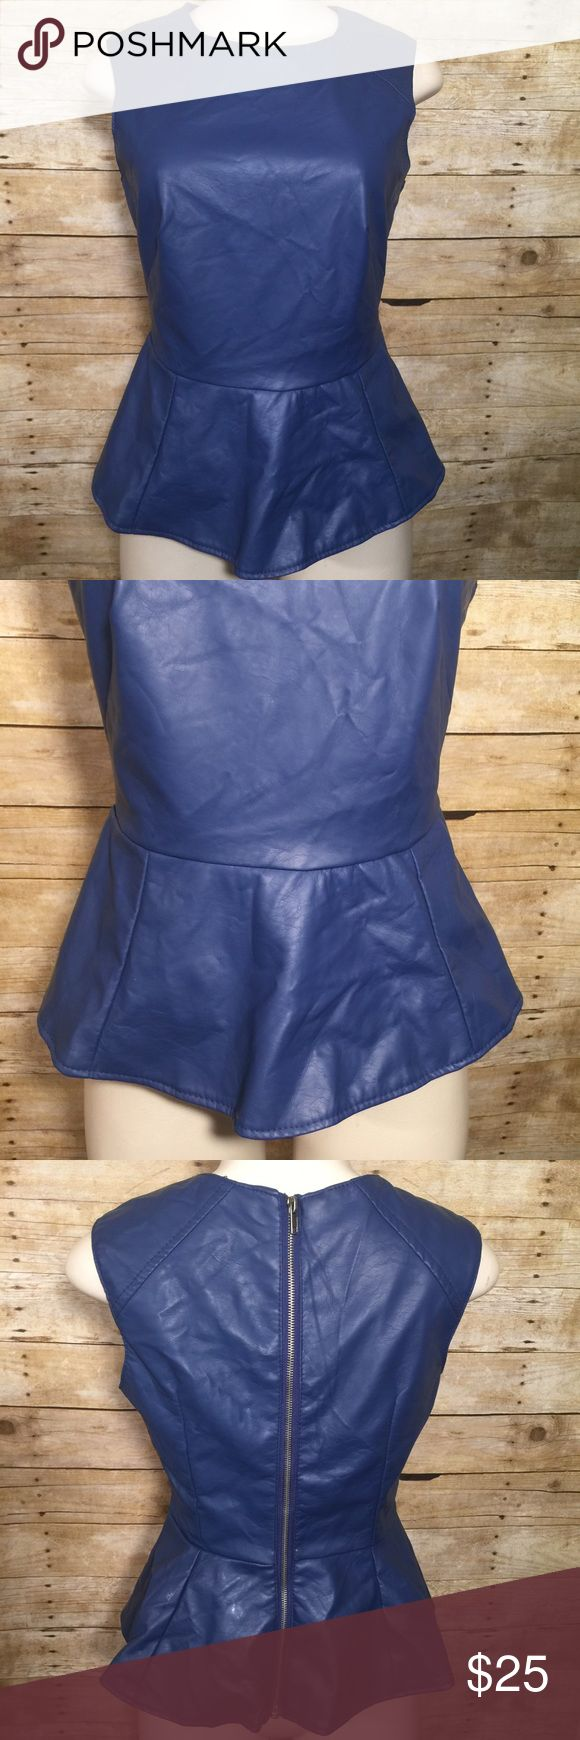 """Navy Blue Faux Leather Peplum Top So cute !! A great look !! CHEST 16 1/2"""" Length 20 1/2"""" Last Kiss Tops"""